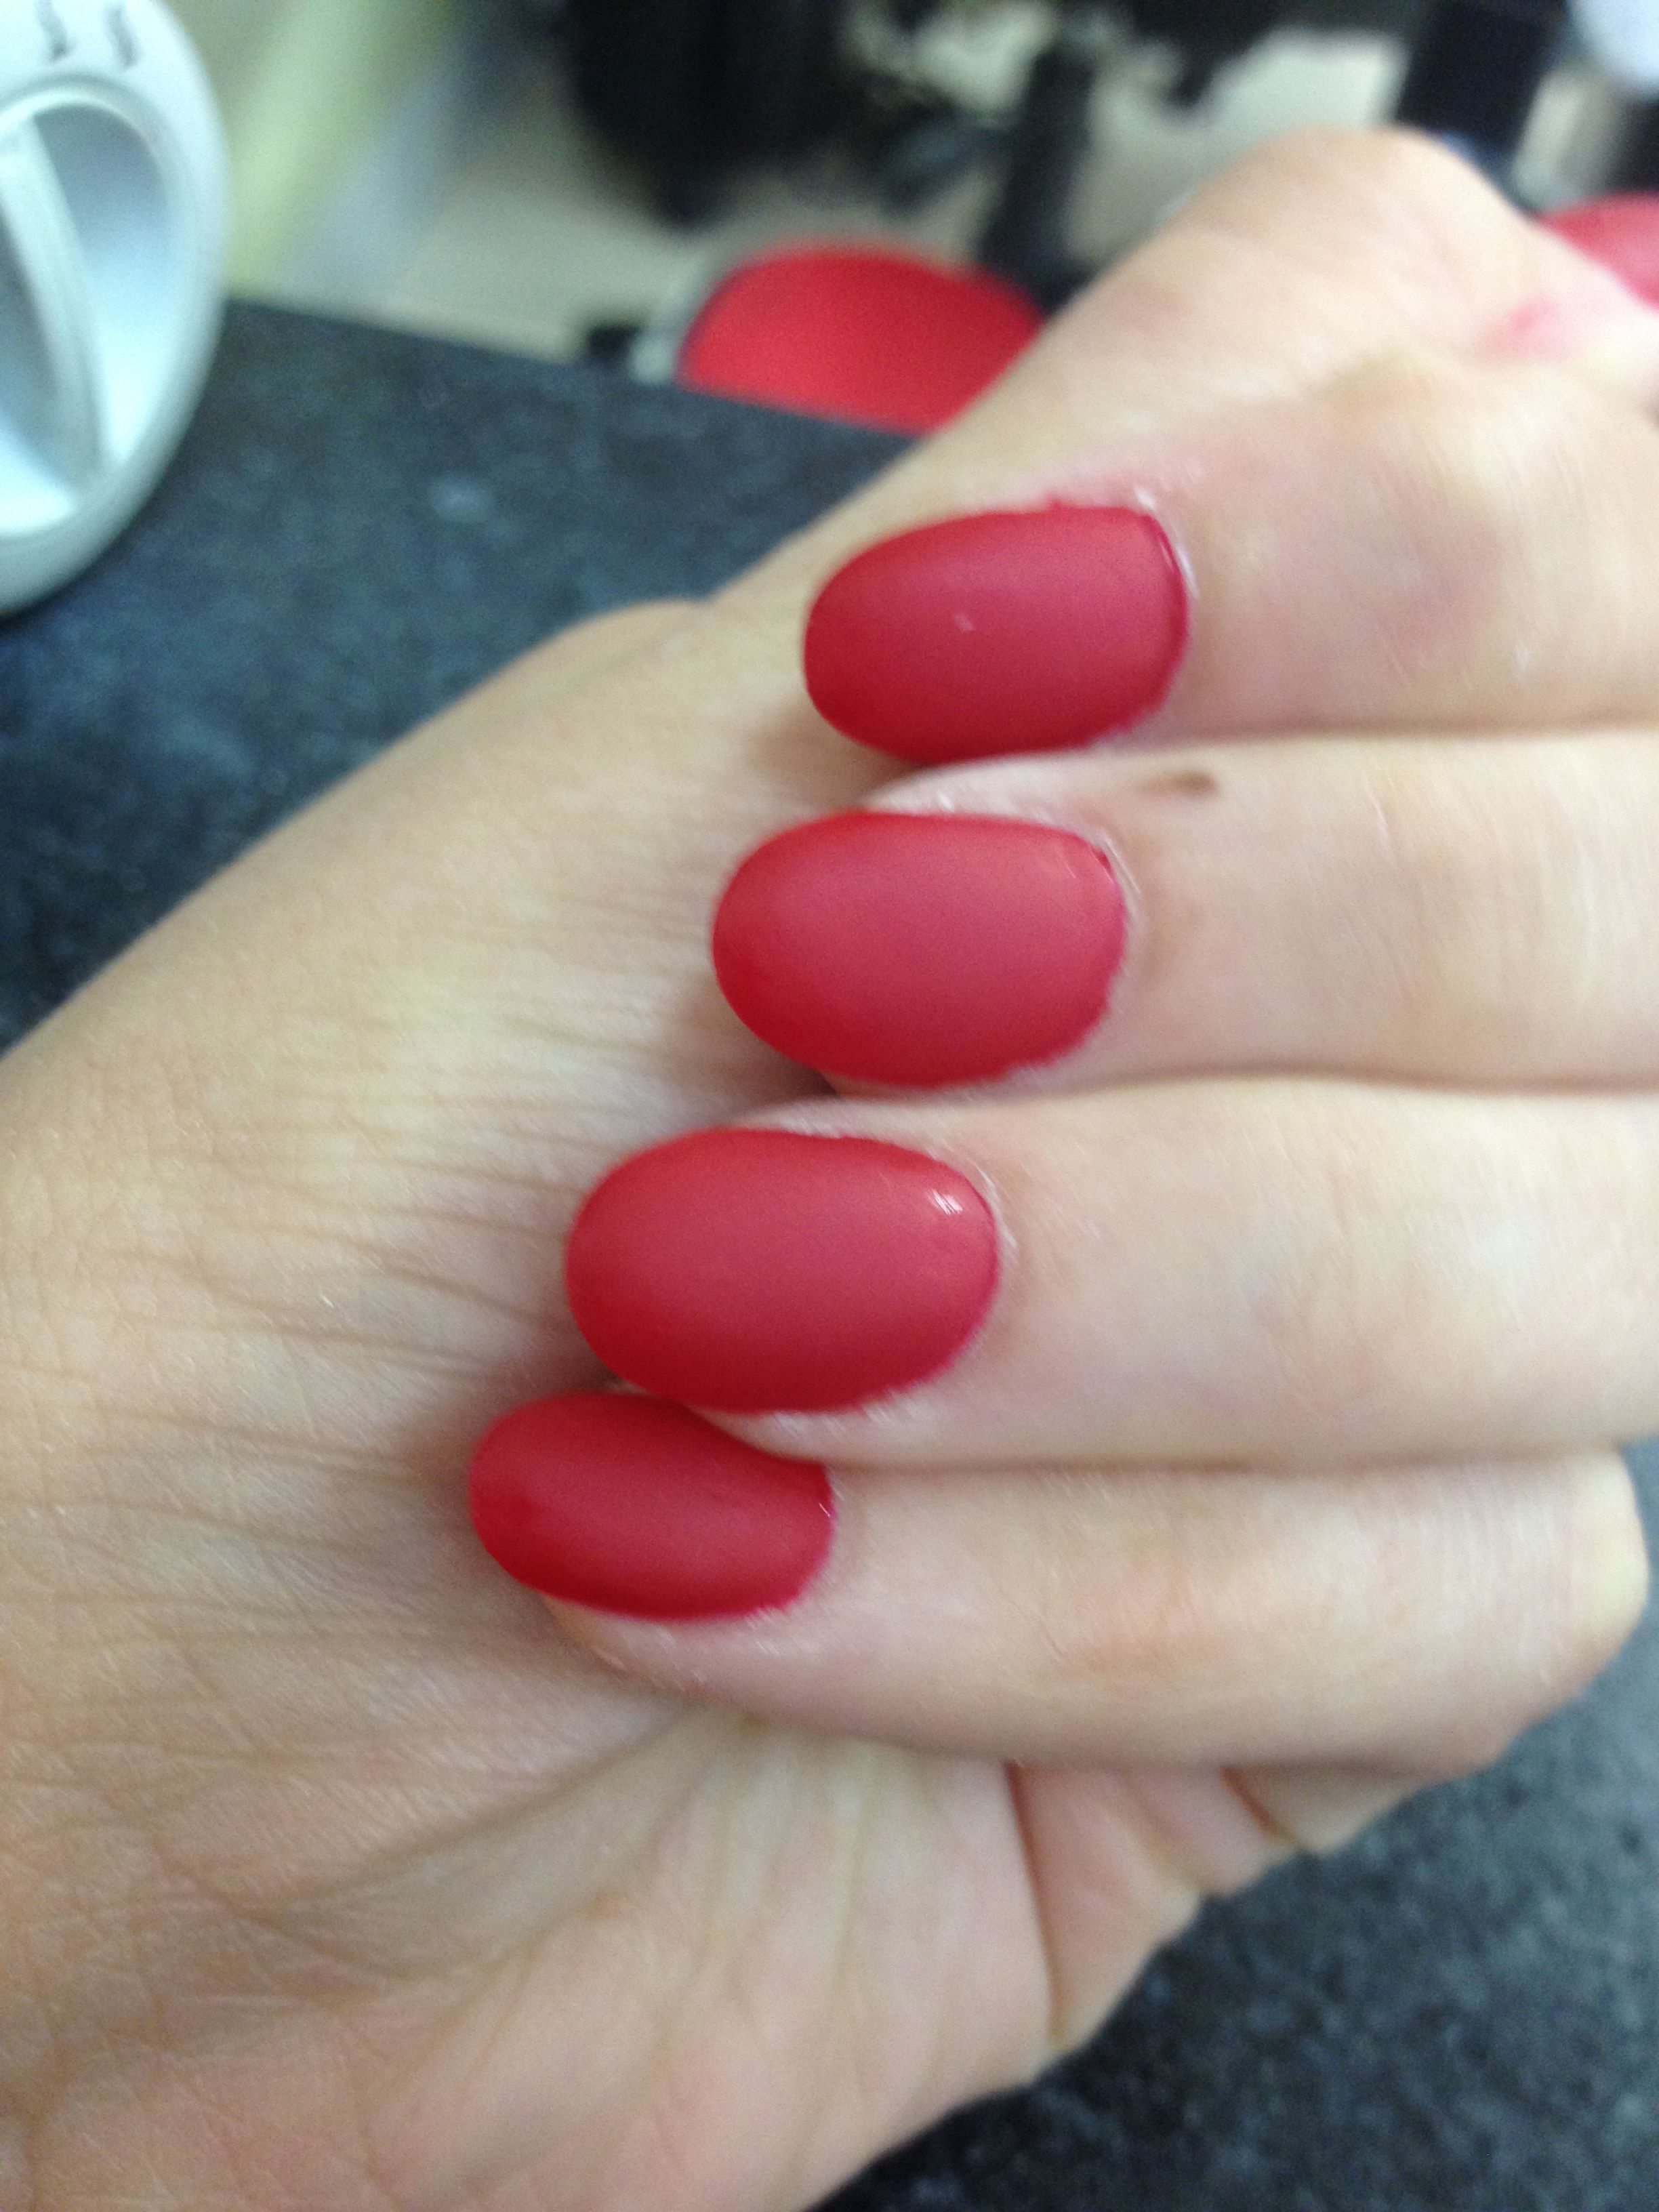 My new almond shaped red matte nails | Nails | Pinterest | Red matte ...